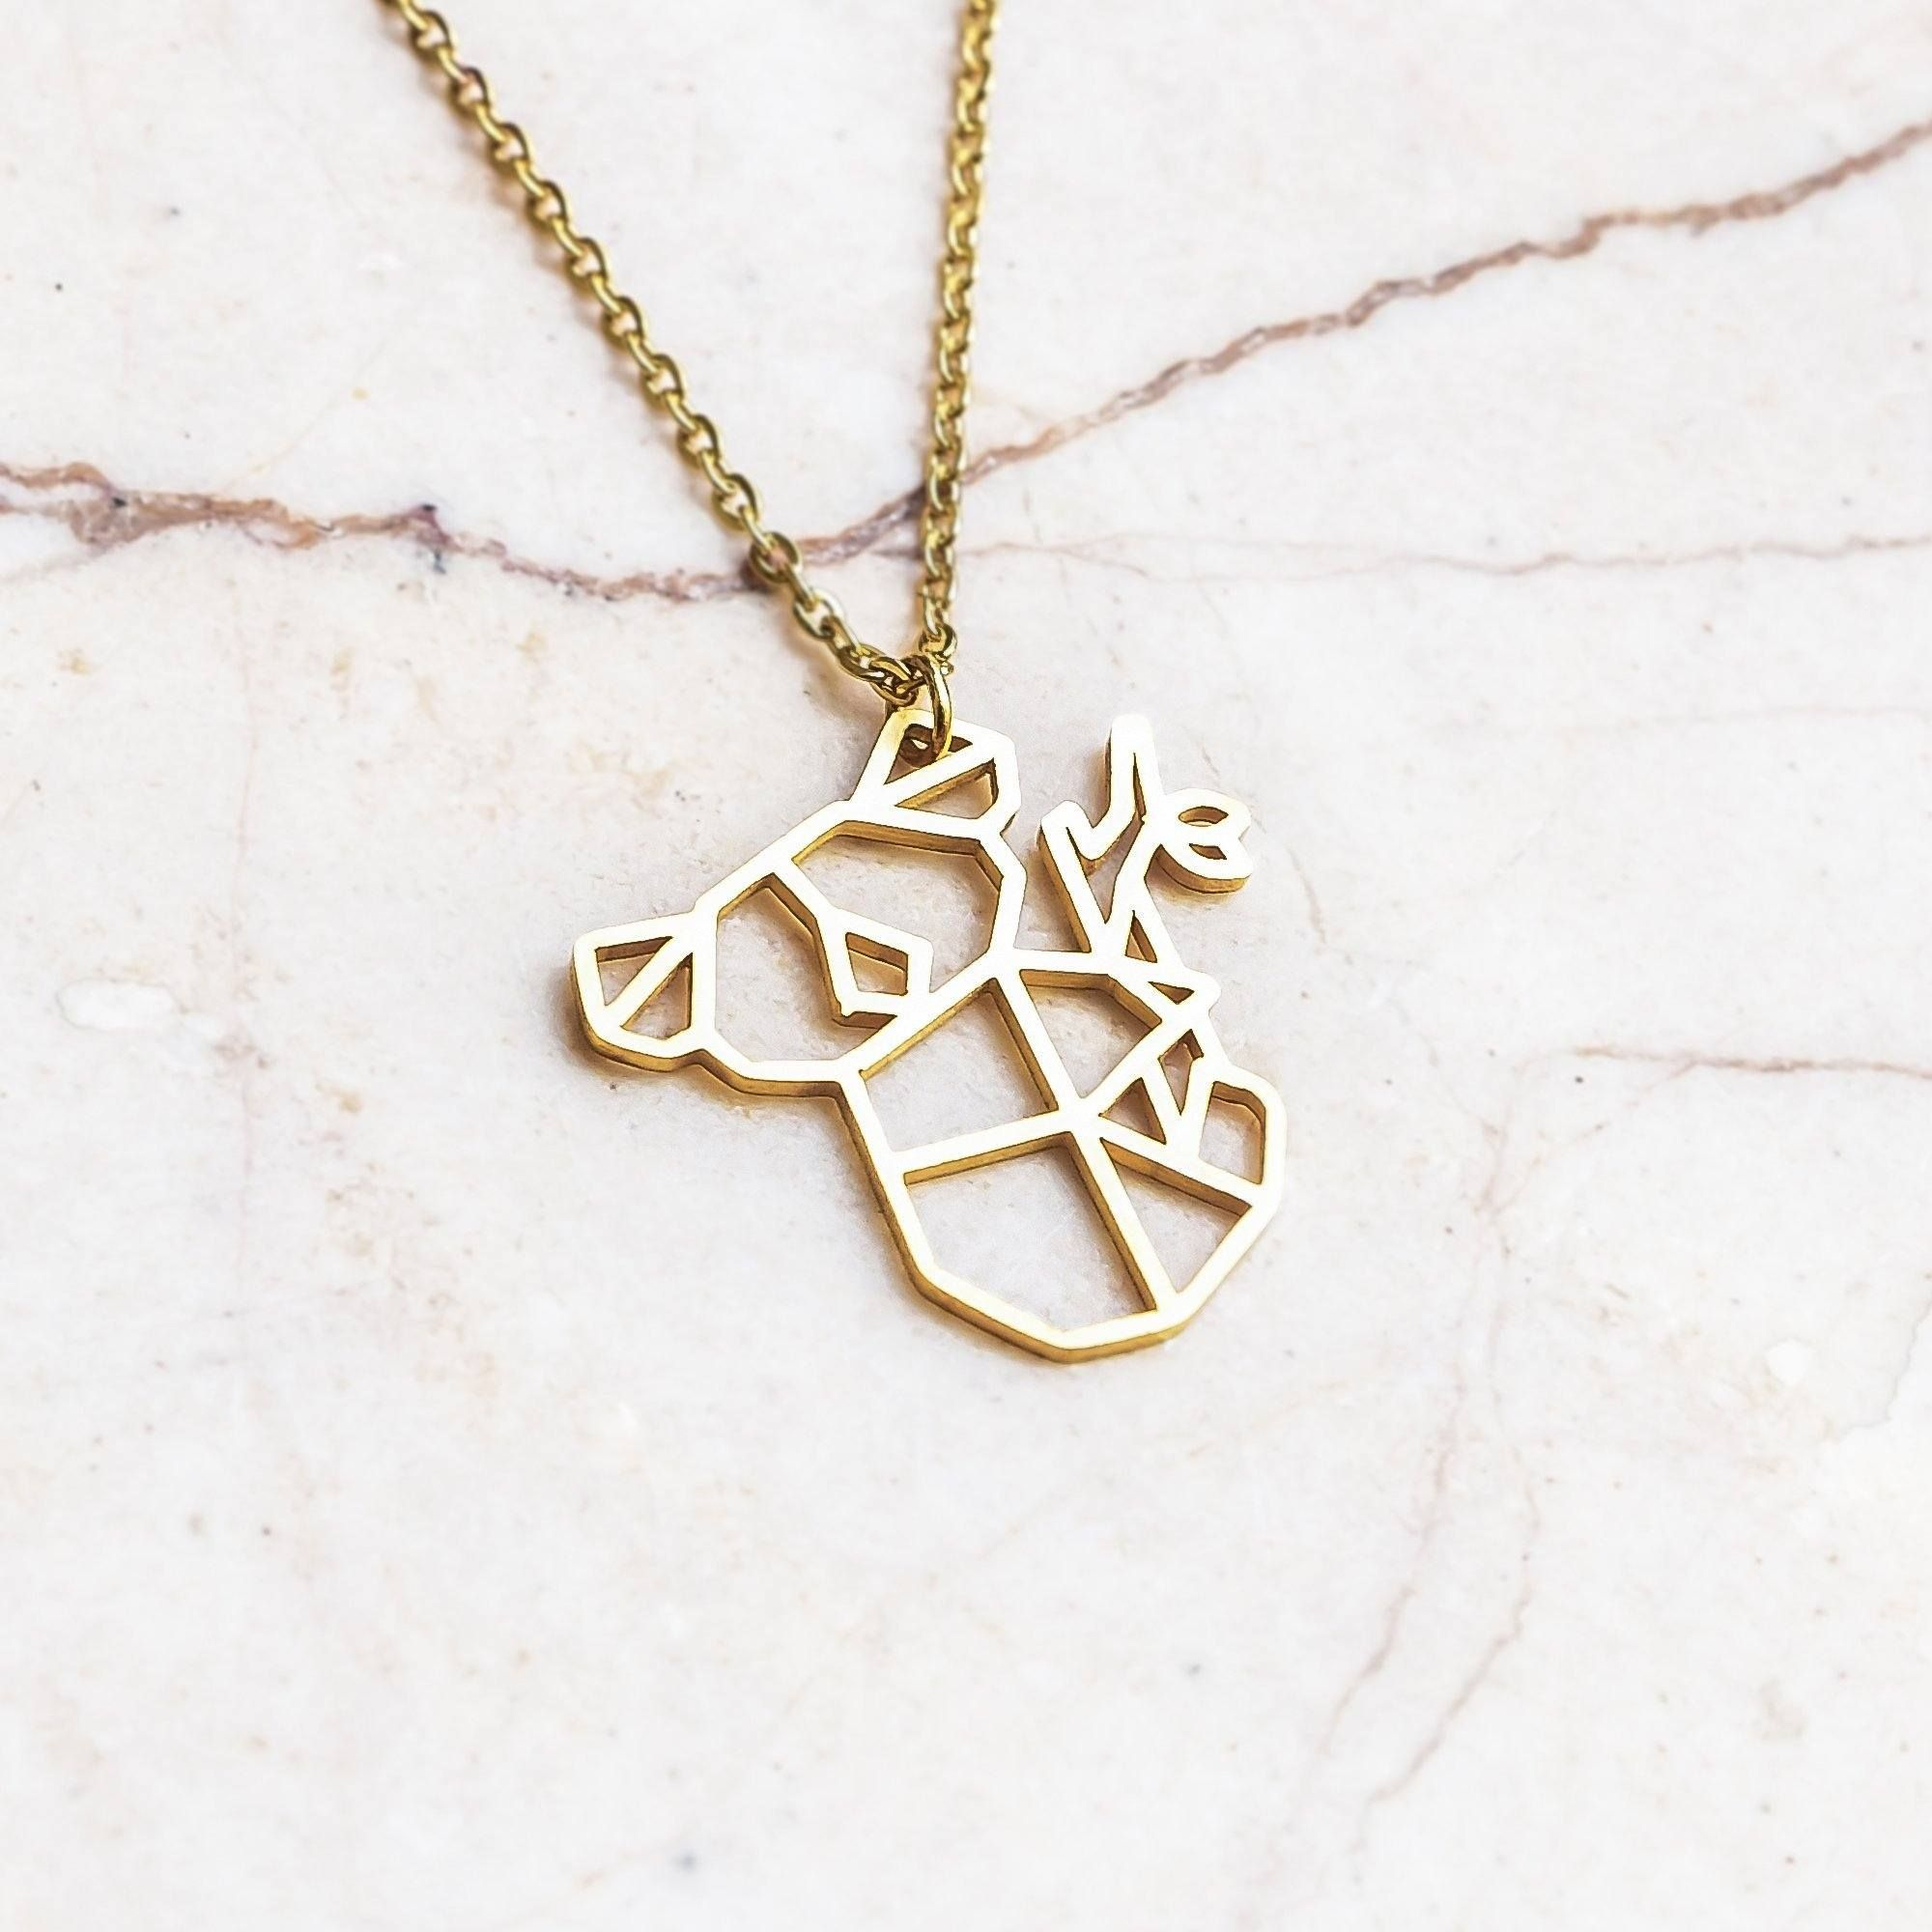 td {border: 1px solid #ccc;}br {mso-data-placement:same-cell;} For the Aussies, the cuddlers, and the cuties — hang tight, it's the koala. Gold edition.Geometric origami animal koala necklace, gold color. Our necklaces are delightfully packaged, ideal for a gift, with free US delivery. 18 karat gold plated ultra durable stainless steel Precision laser cut Koala pendant dimensions: 7/8 inch wide X 7/8 inch high (21mm wide X 21mm high) Necklace length: 15 inches (38cm), with 2 3/4 inches (7cm) adj